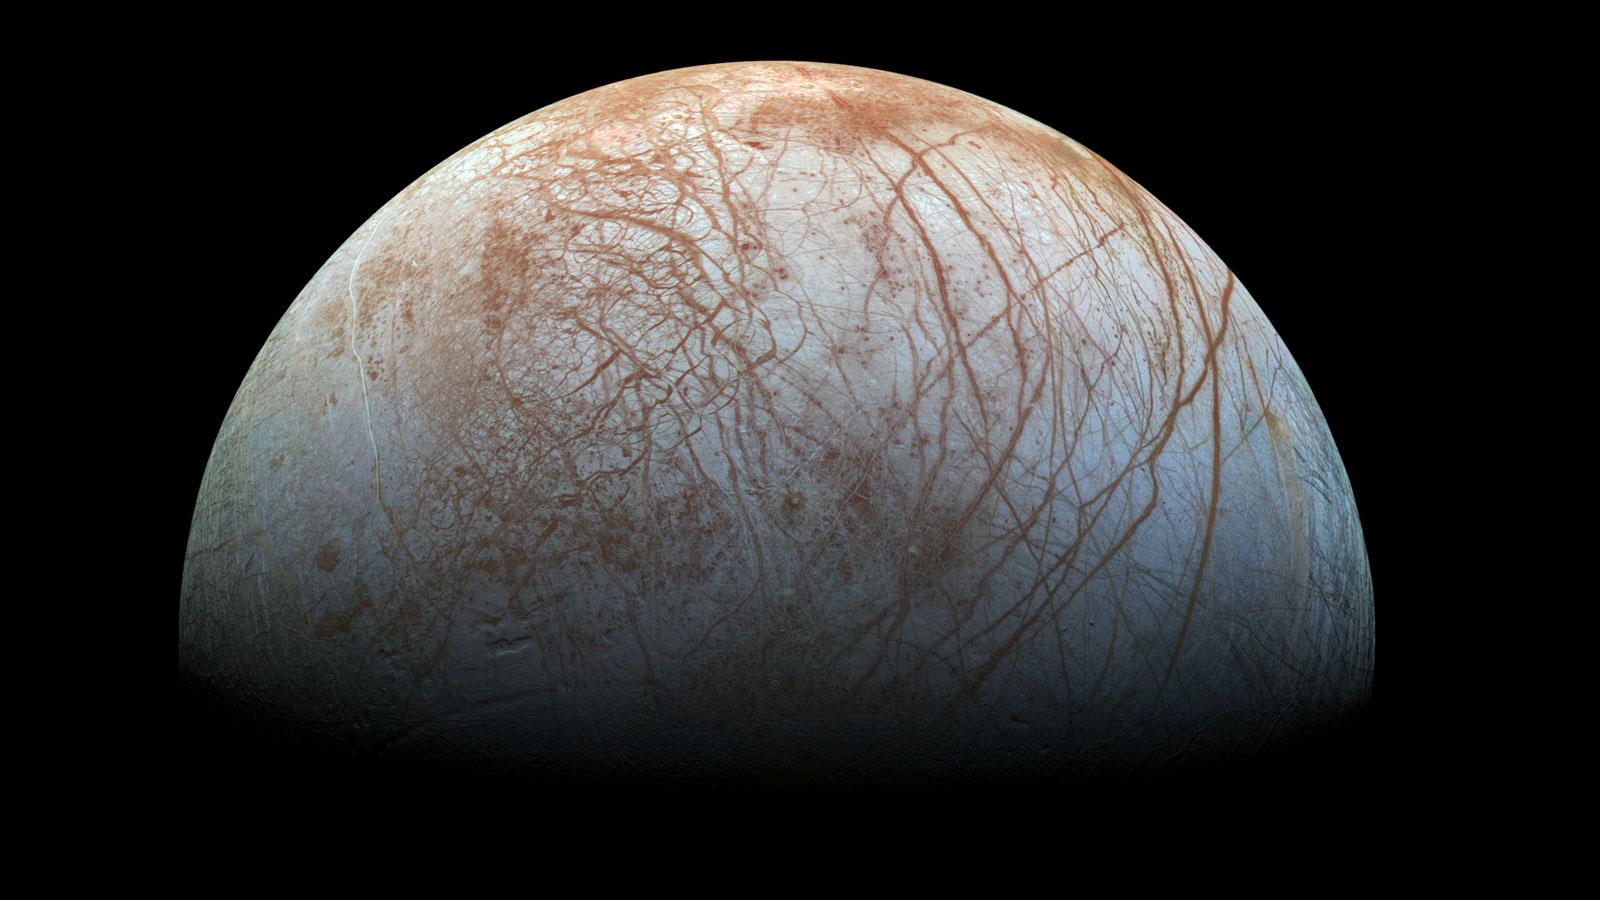 The puzzling, fascinating surface of Jupiter's icy moon Europa looms large in this newly-reprocessed color view, made from images taken by NASA's Galileo spacecraft in the late 1990s. Image credit: NASA/JPL-Caltech/SETI Institute